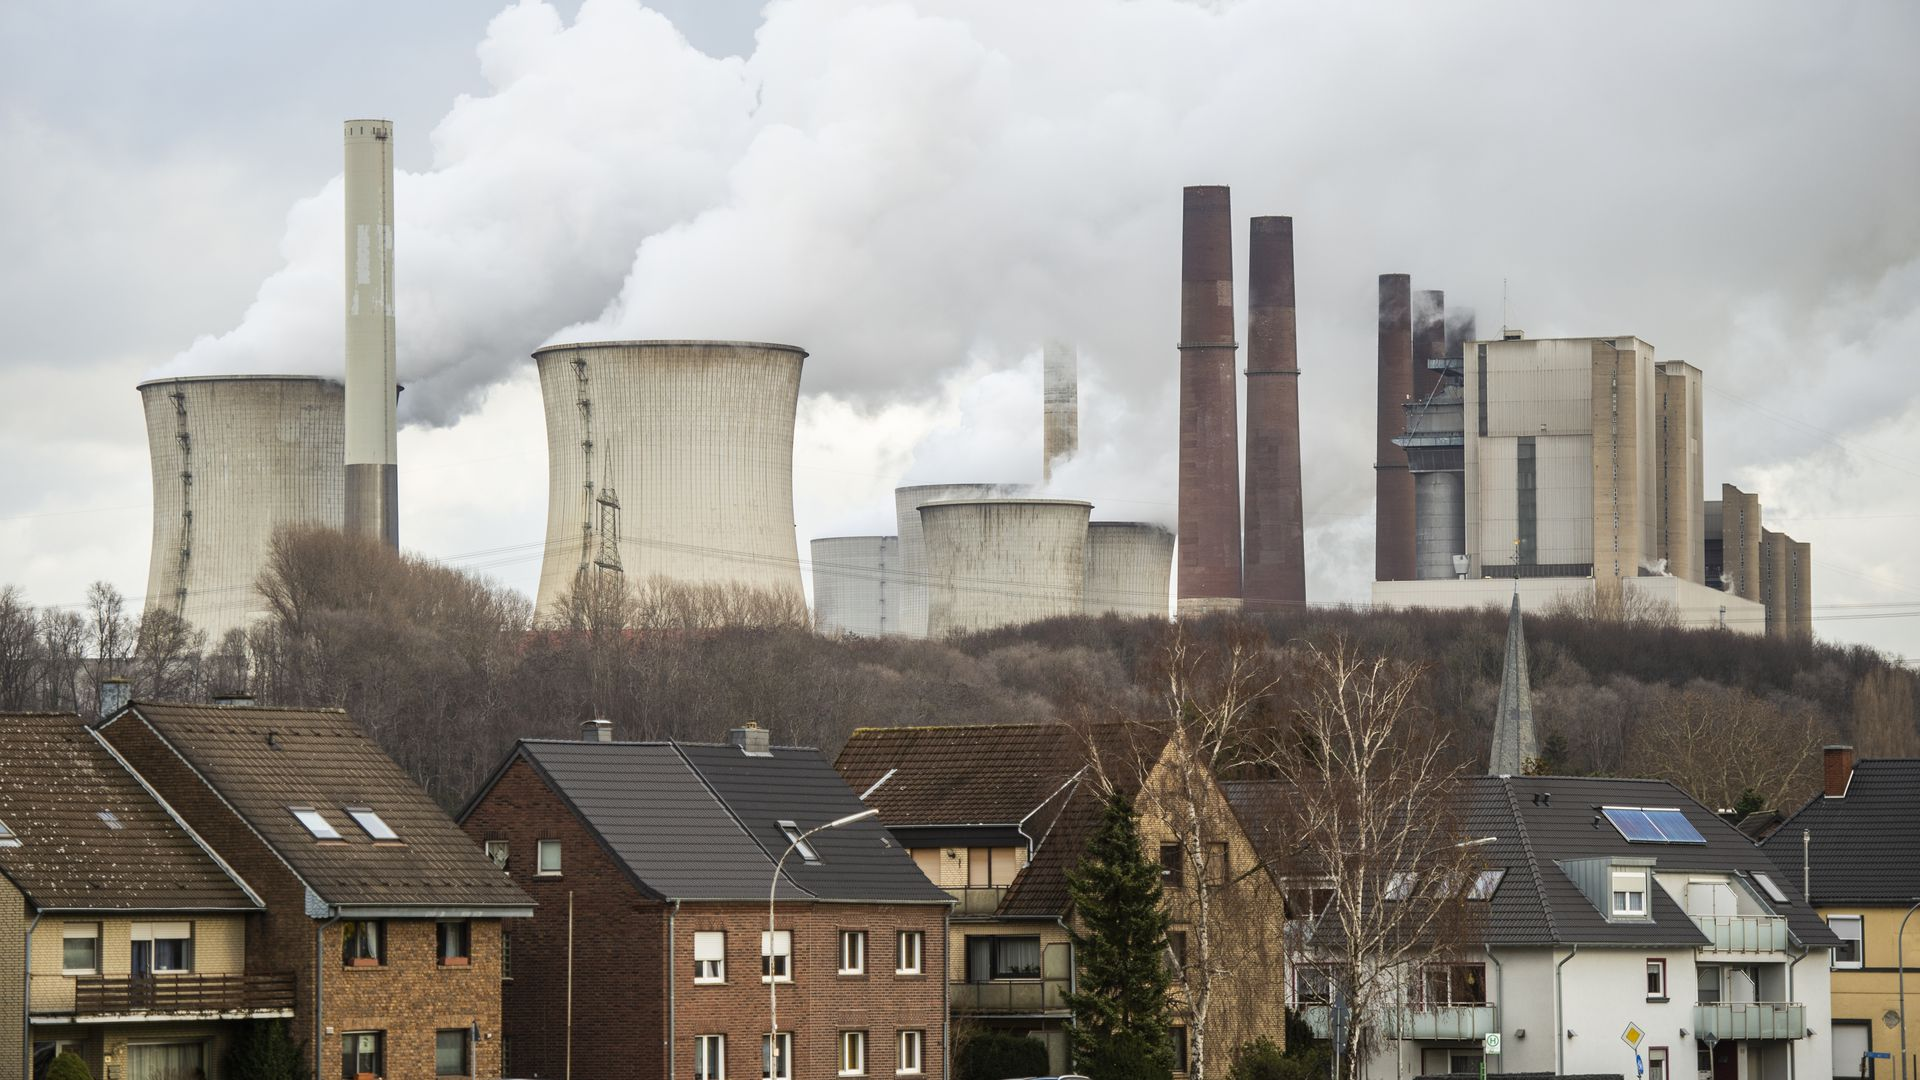 Coal plants in a German town